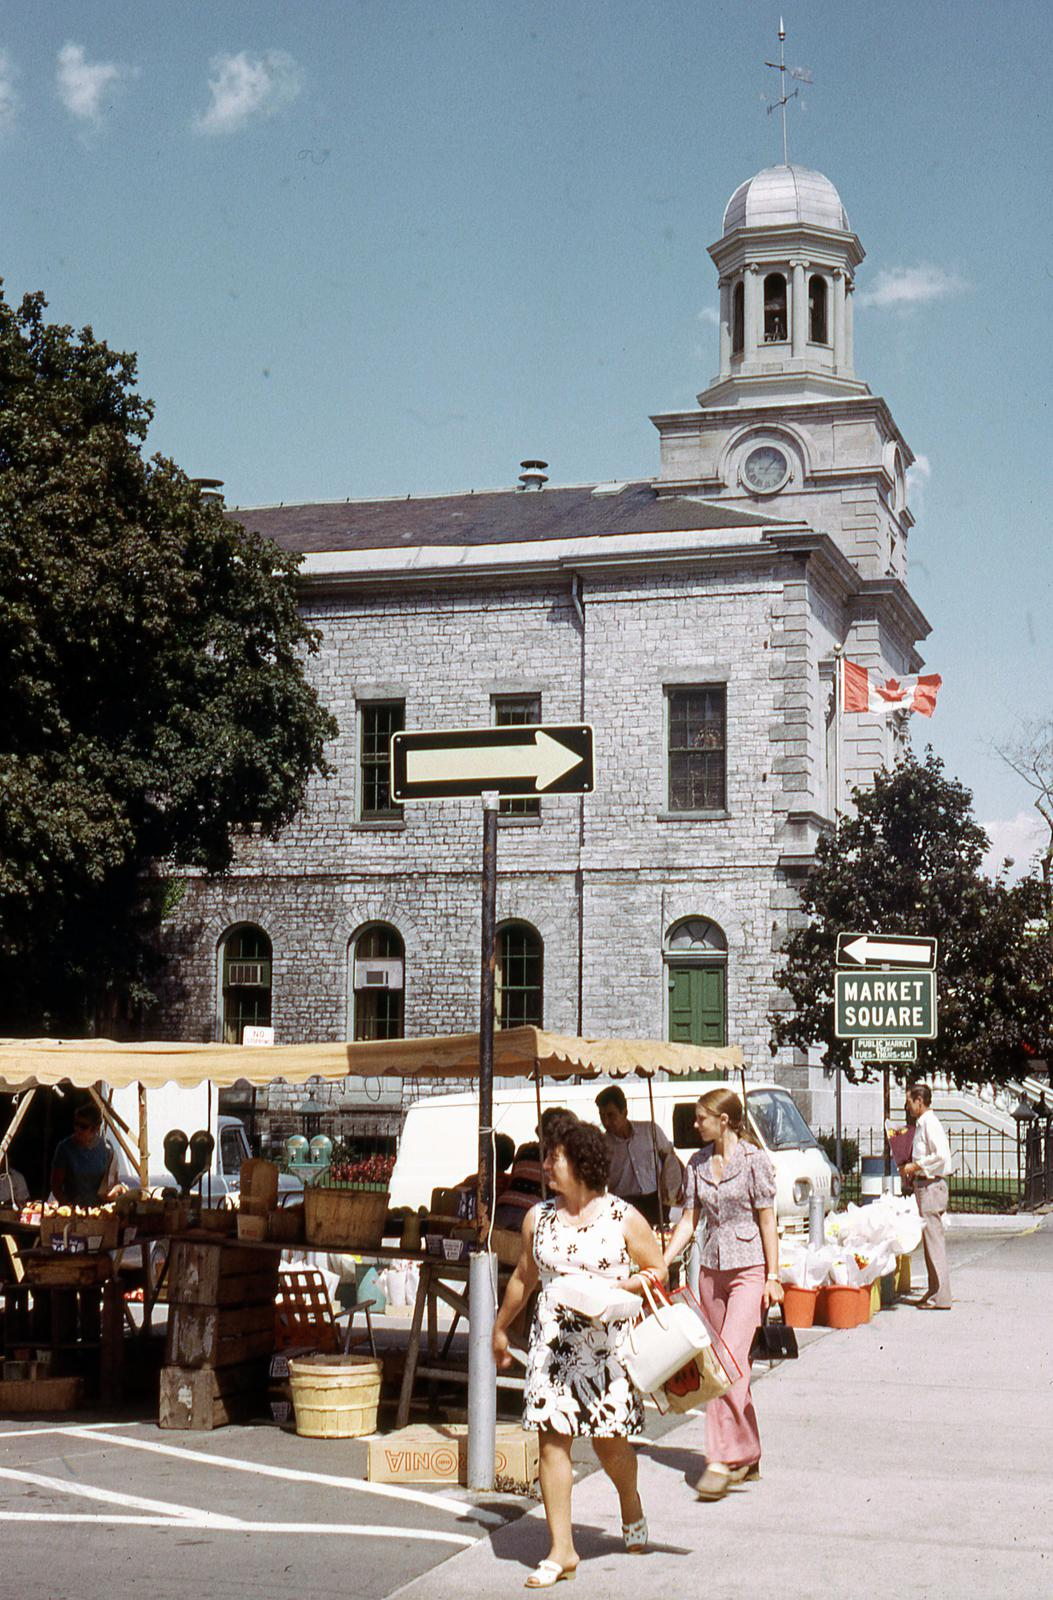 Market Square and the Old Courthouse